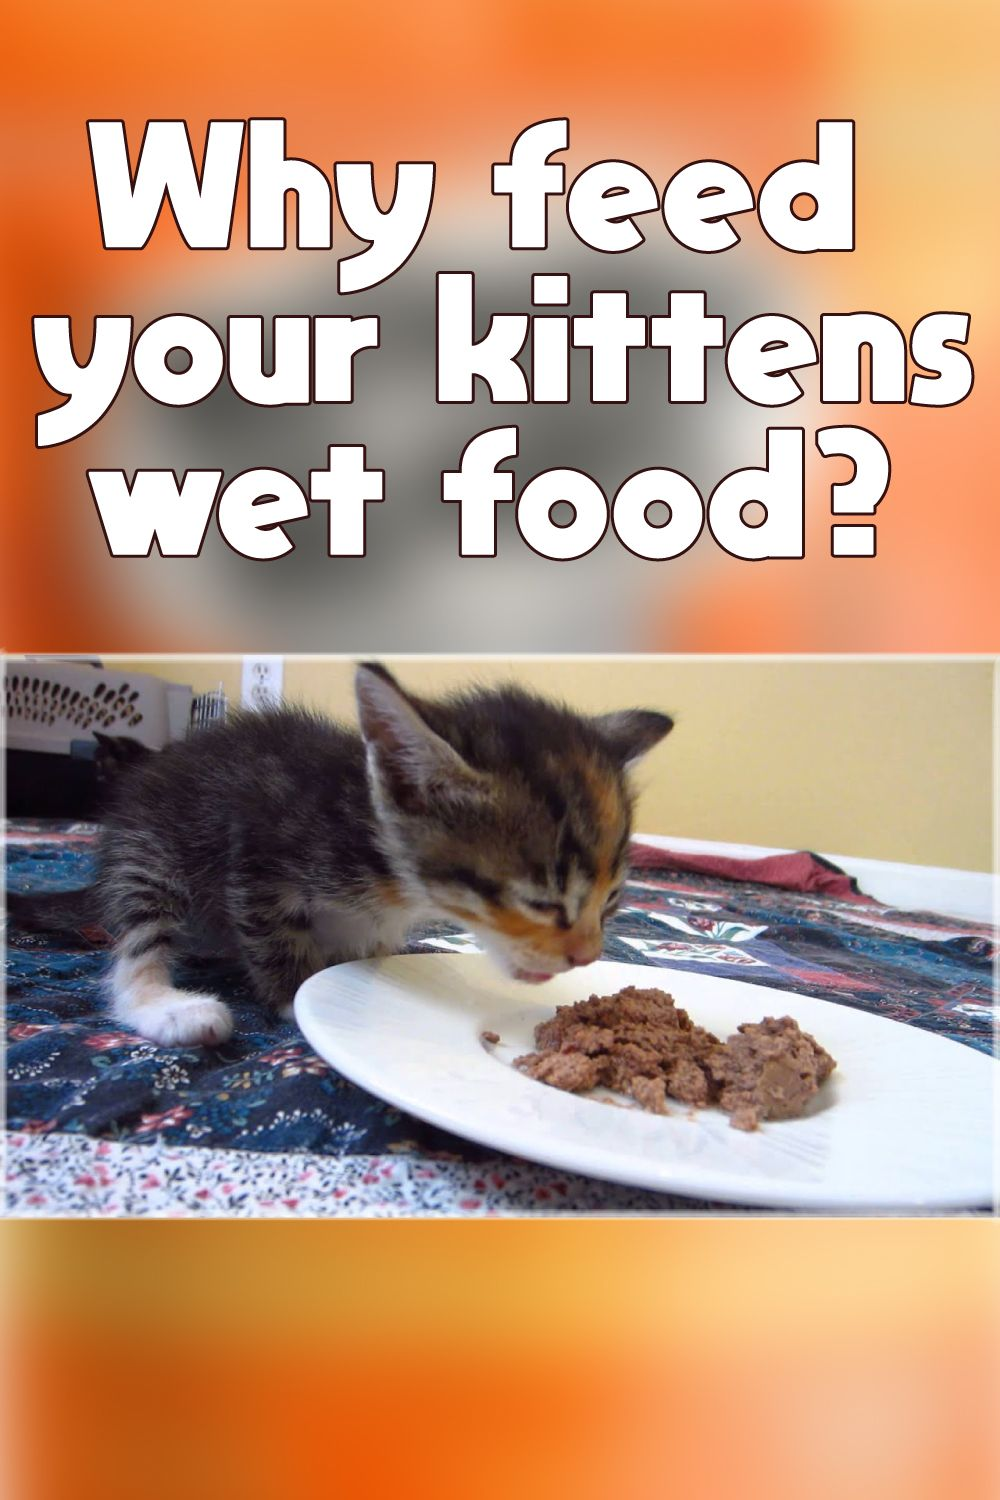 Why Feed Your Kittens Wet Food In 2020 Kitten Food Kitten Food Brands Cat Food Brands